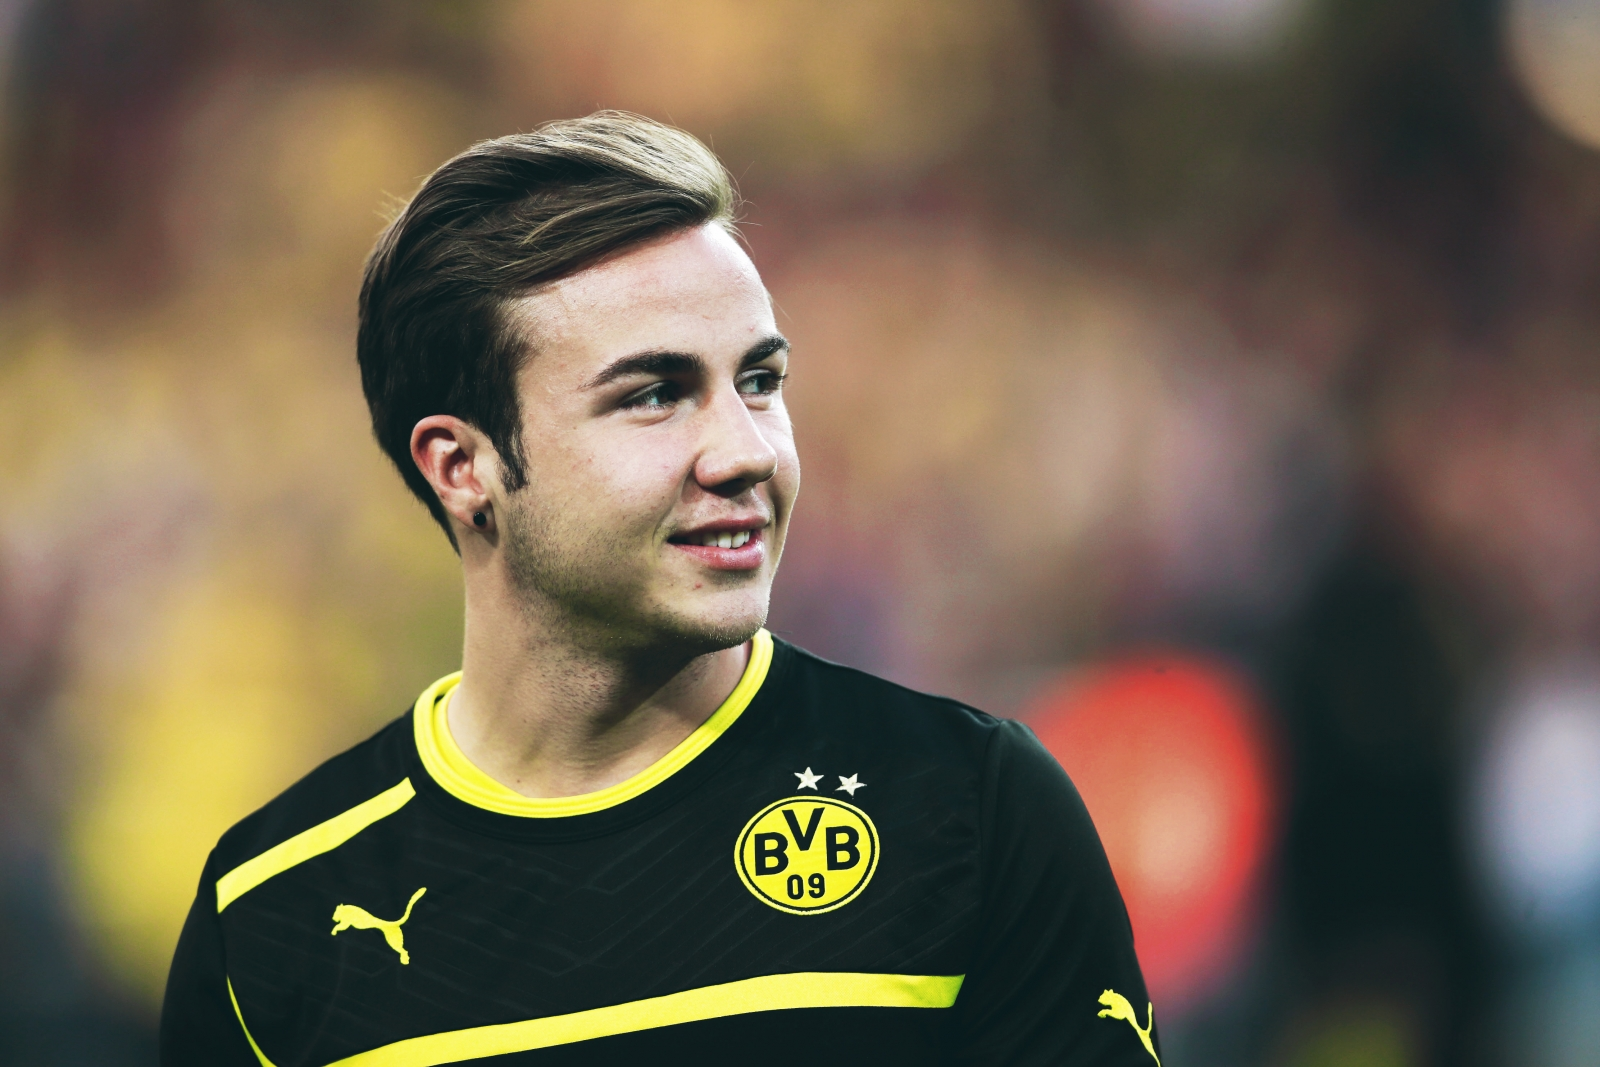 Mario Götze and a great career hanging in the balance